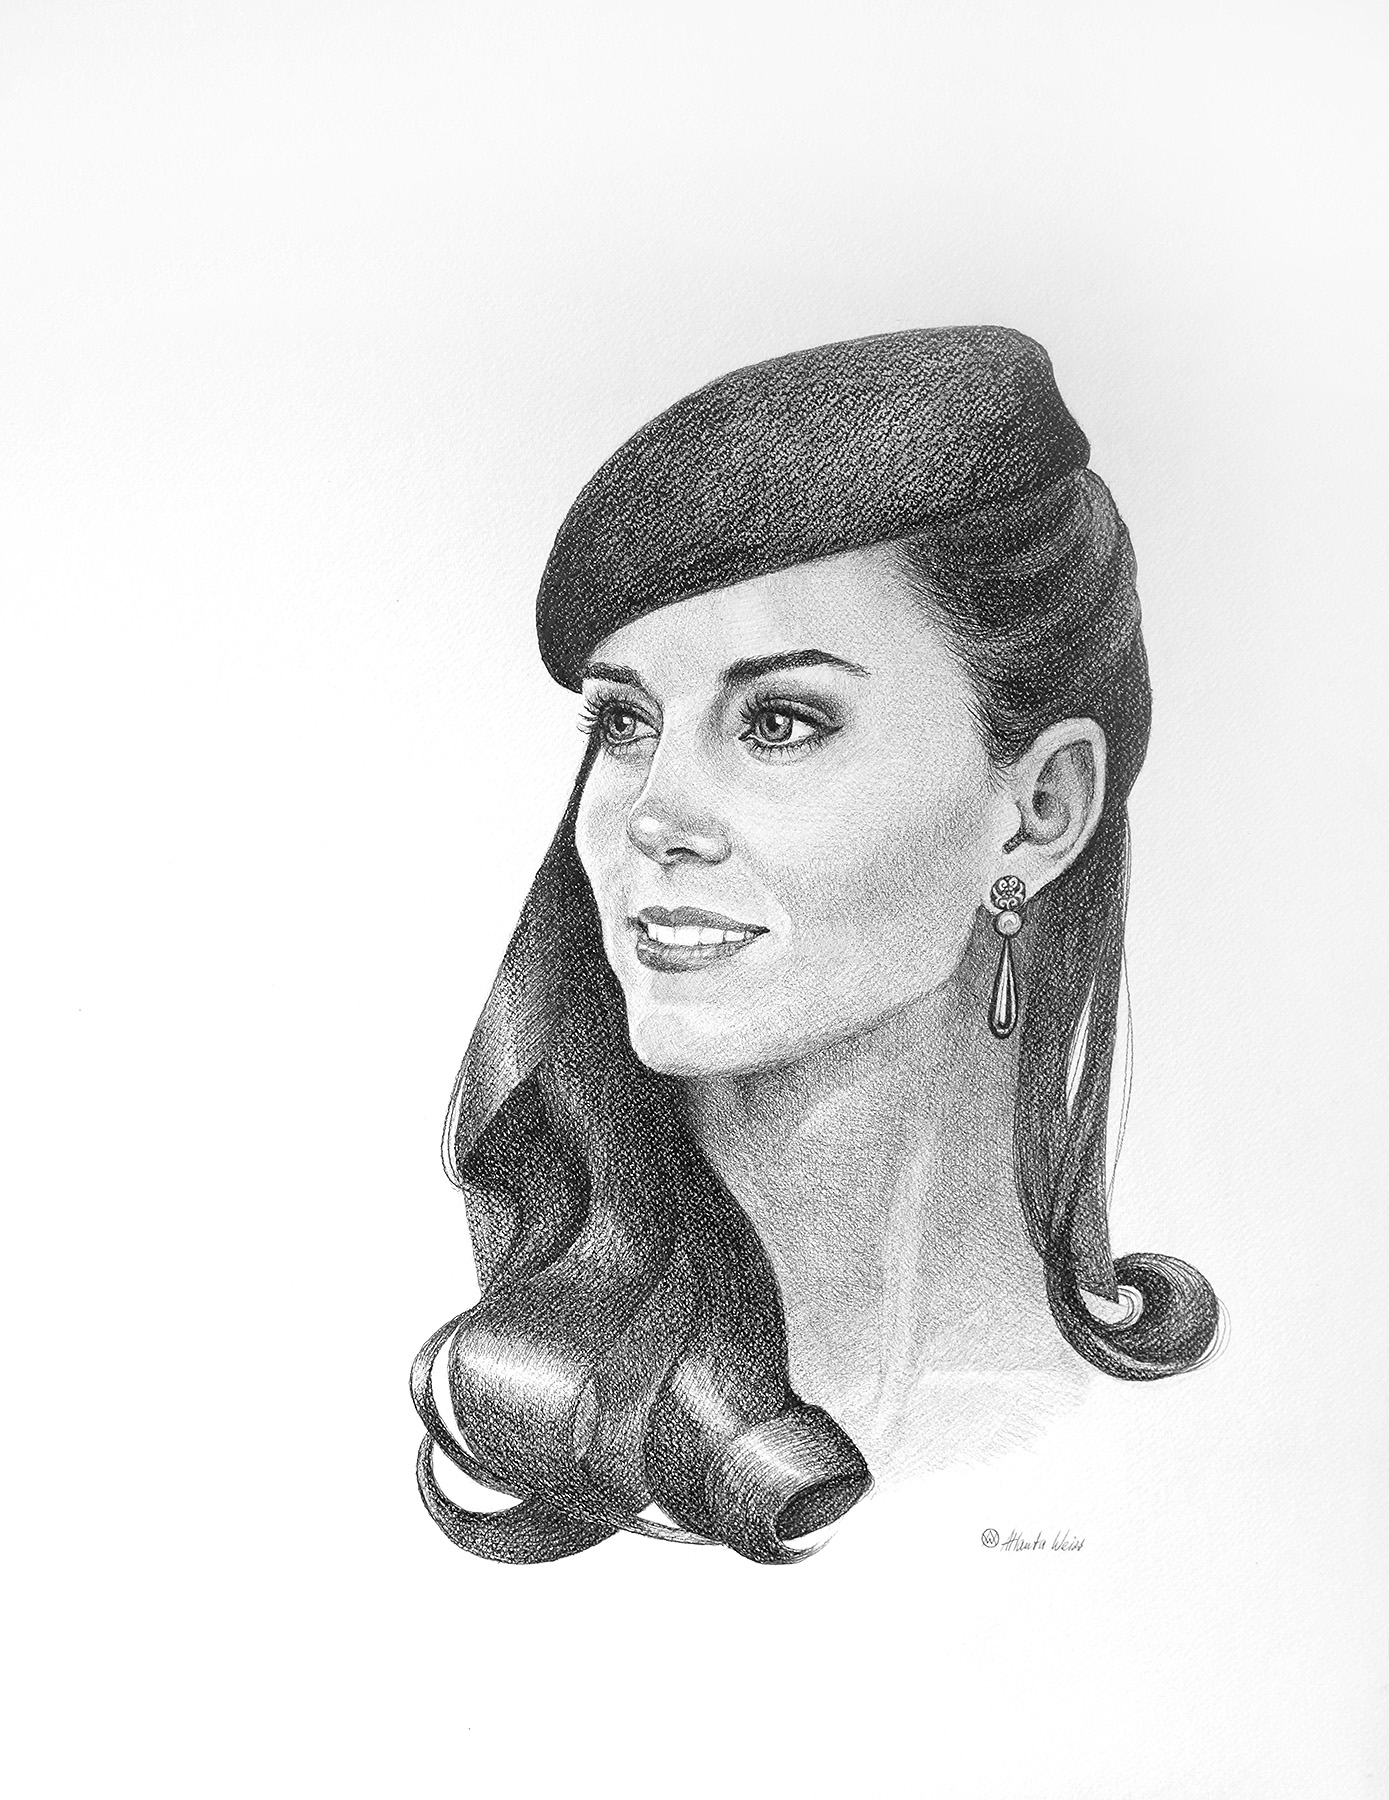 Example of a commissioned drawing by Atlanta Weiss